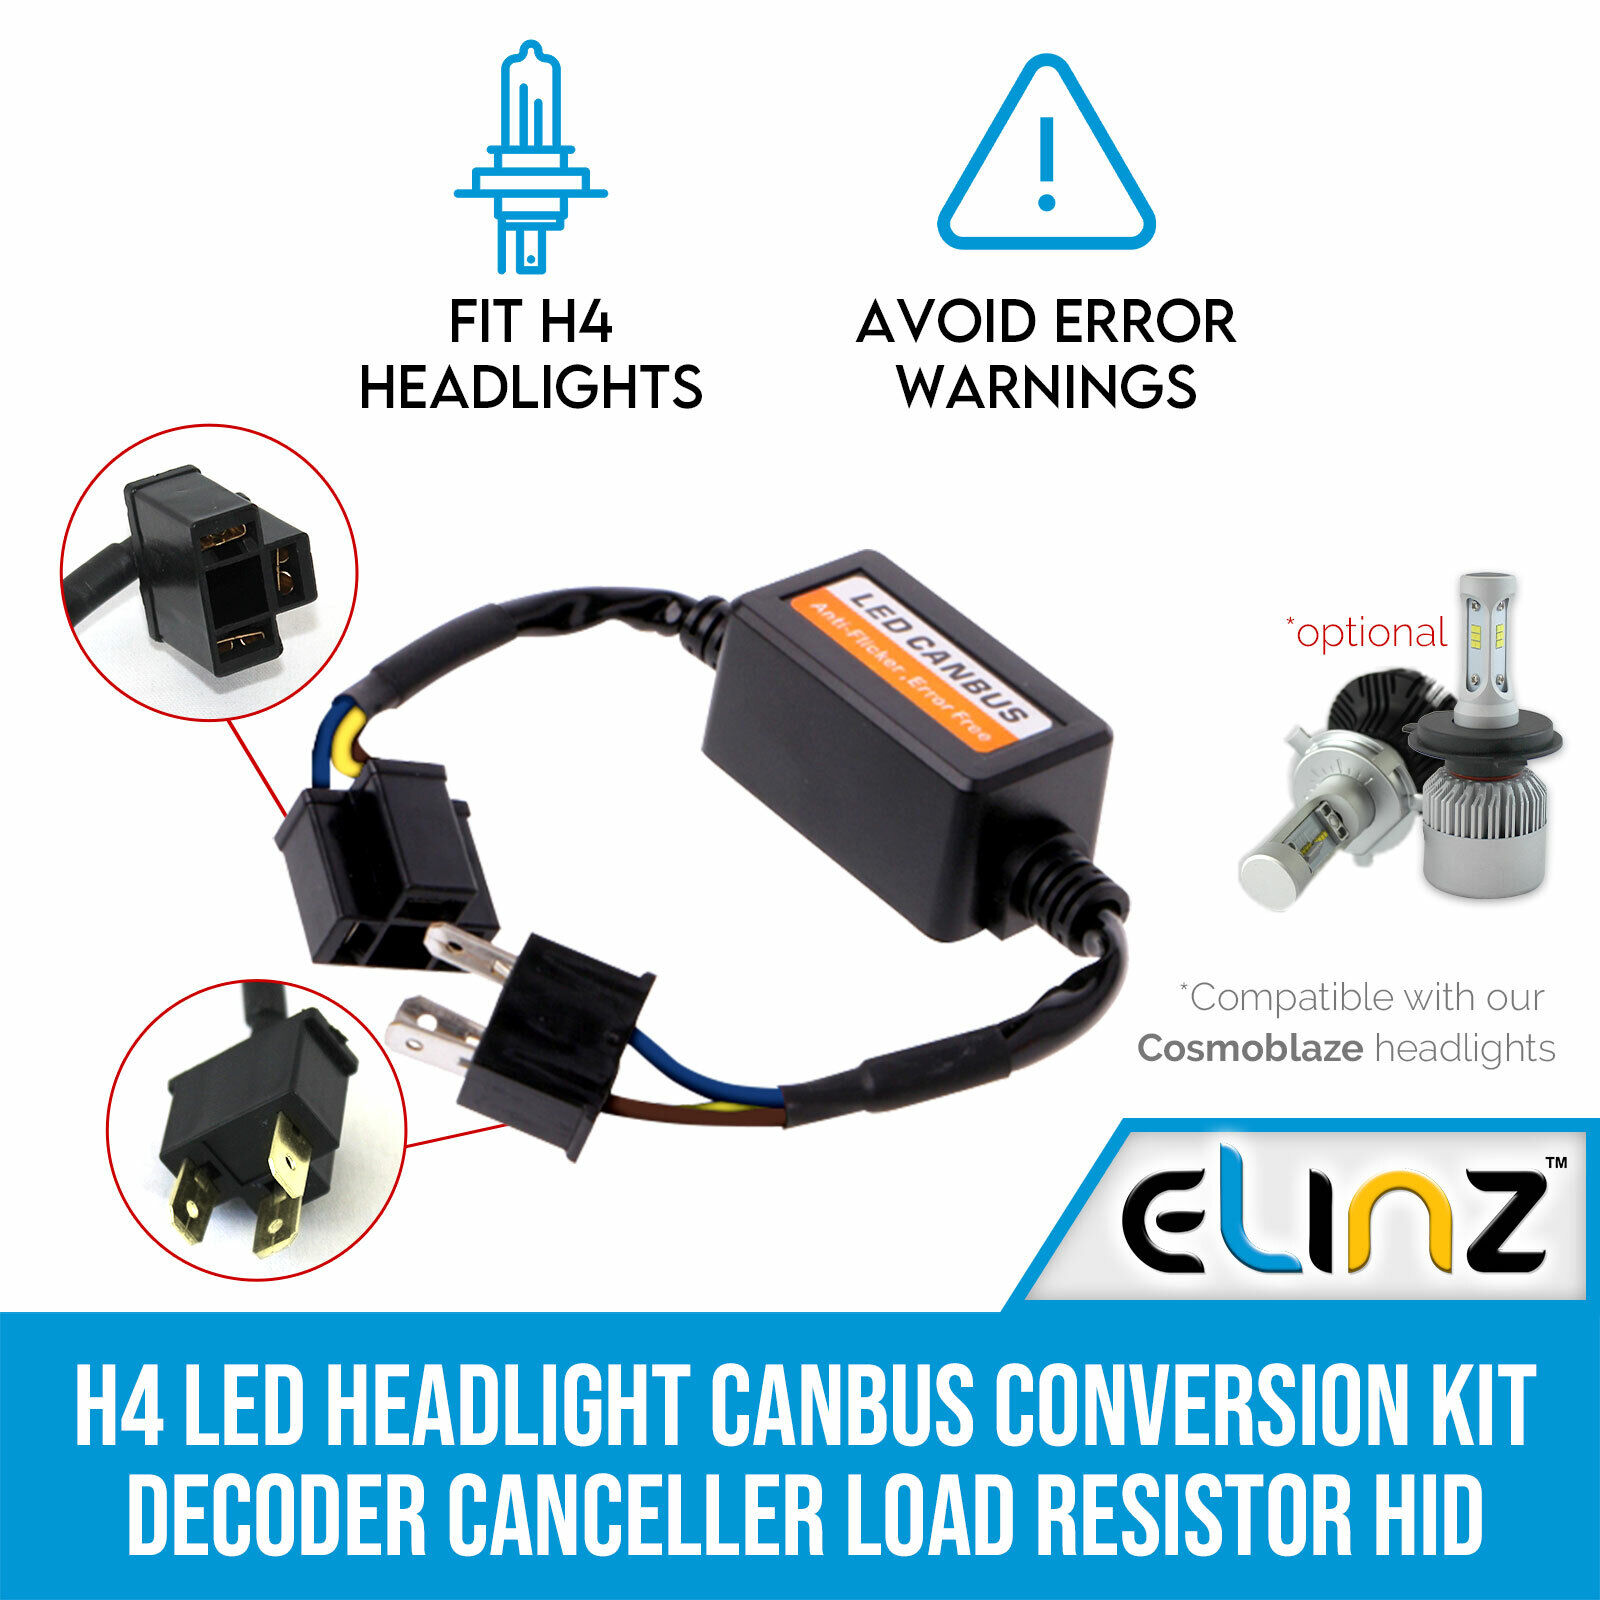 H4 Led Headlight Canbus Conversion Kit Decoder Canceller Load 12v H11 Fog Light Lamp Resistor Wiring Hid Warning Xenon 1 Of 1free Shipping